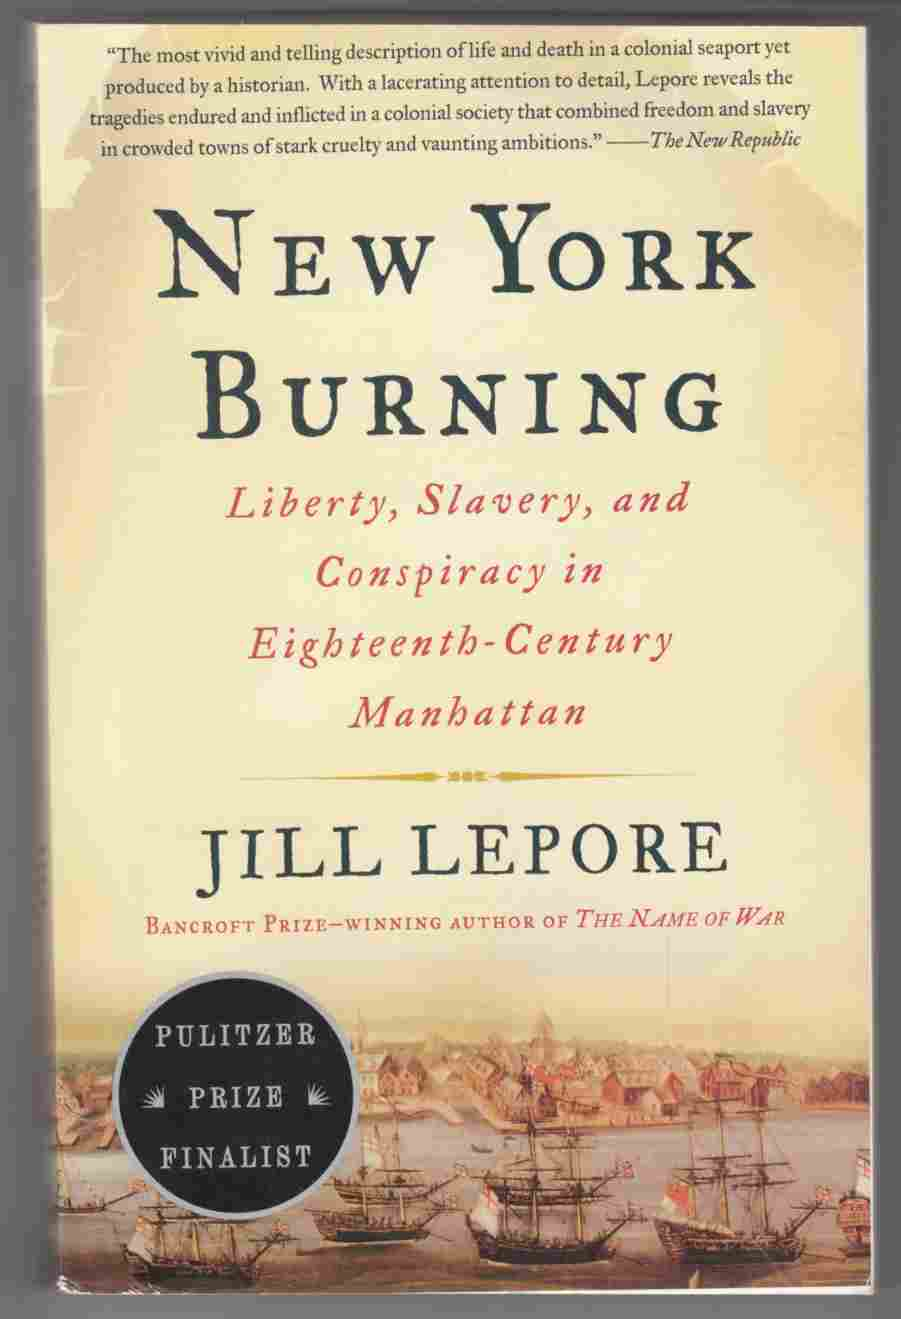 Image for New York Burning Liberty, Slavery, and Conspiracy in Eighteenth-Century Manhattan